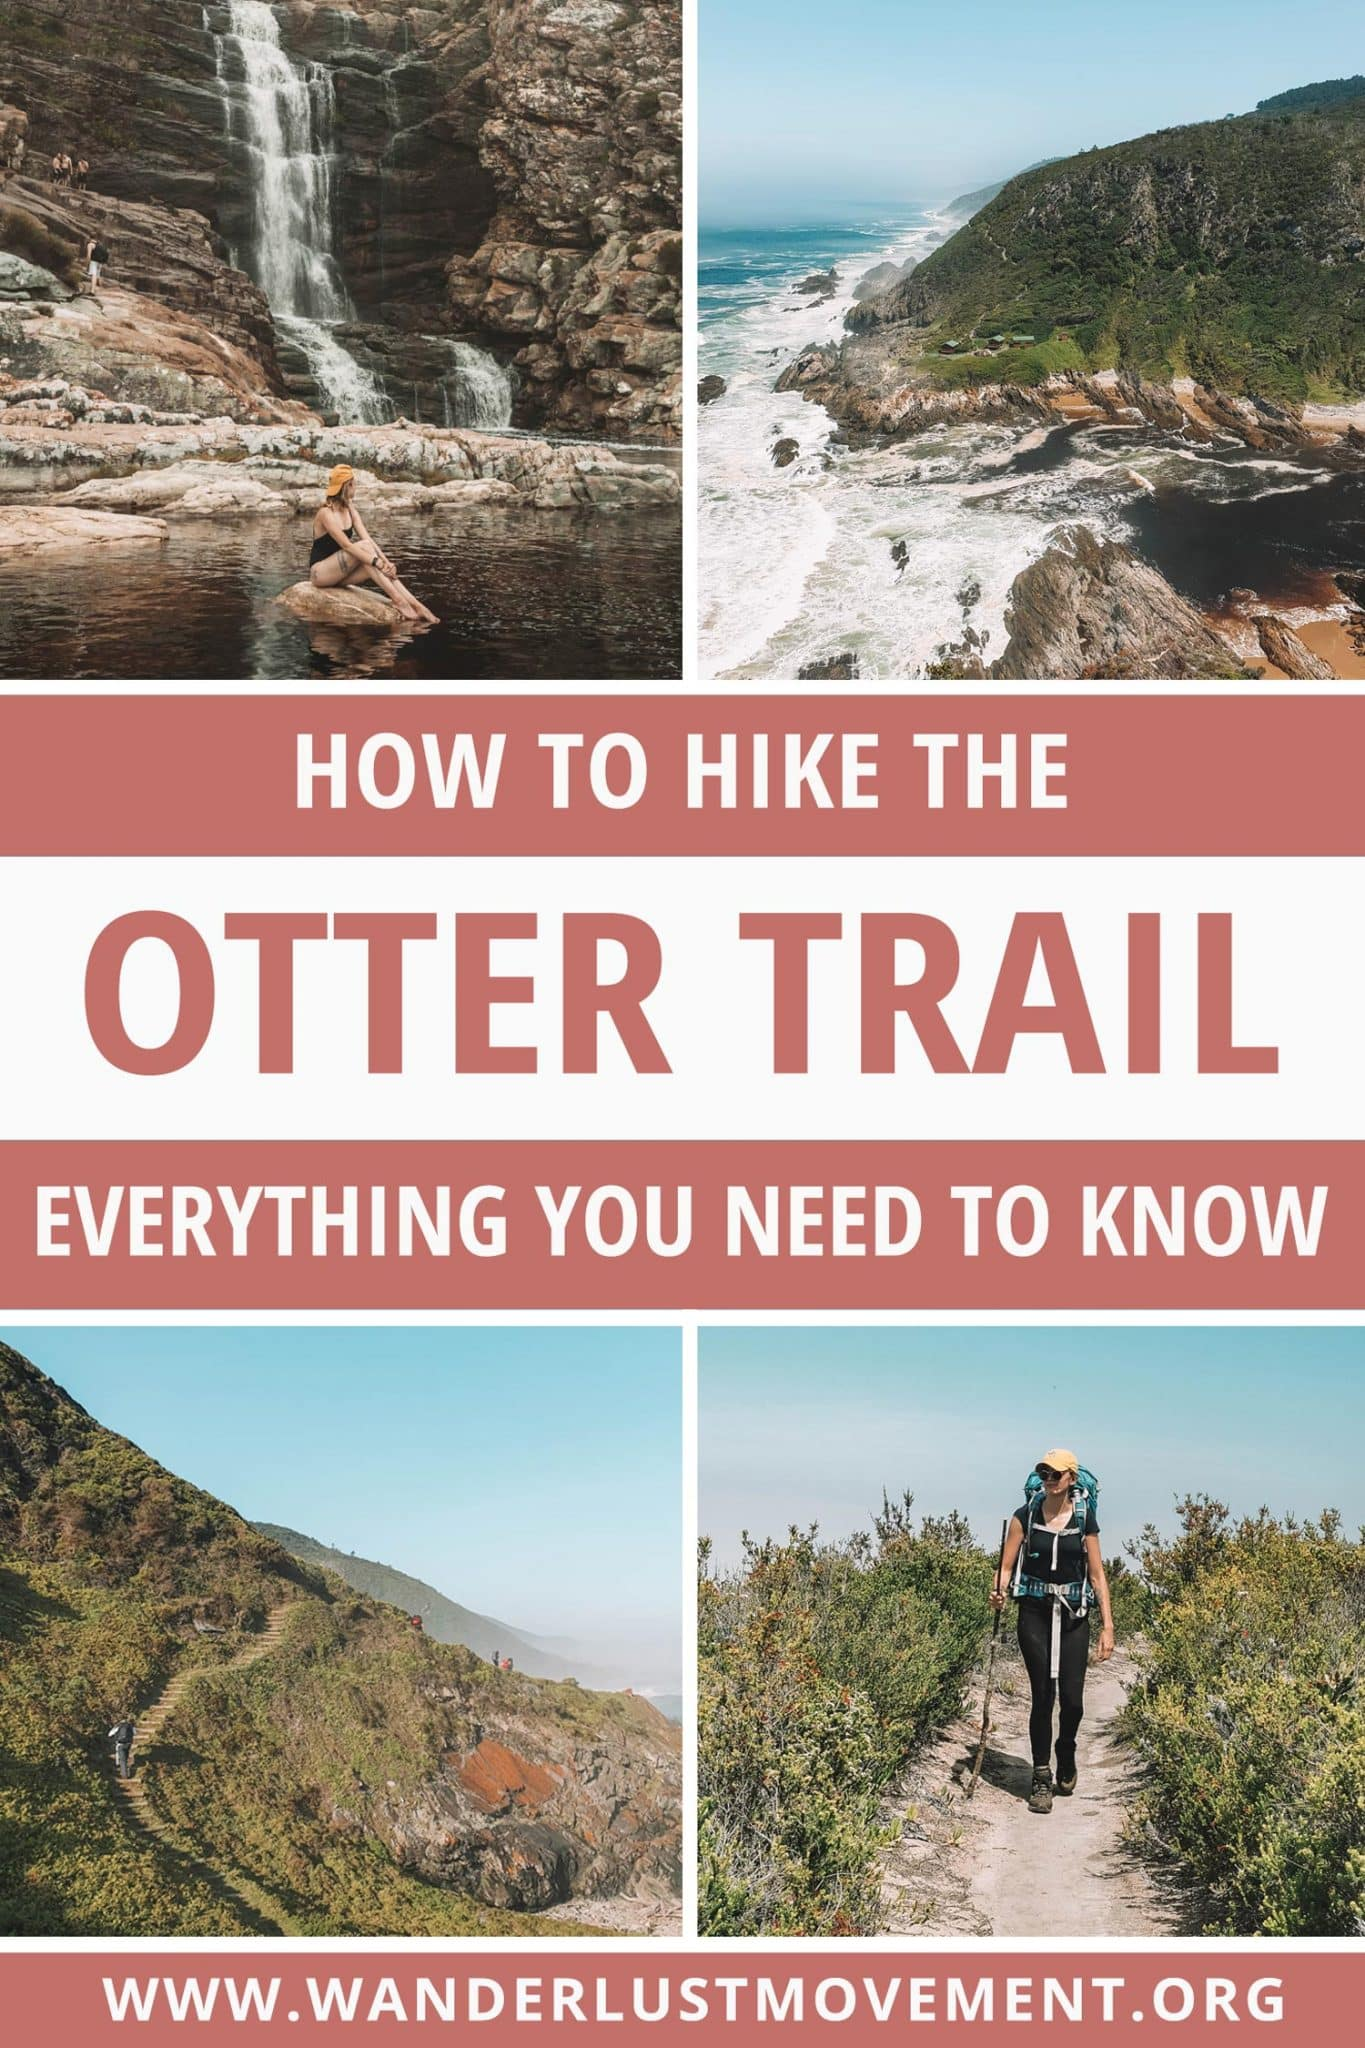 Hiking The Otter Trail in South Africa: Absolutely Everything You Need to Know